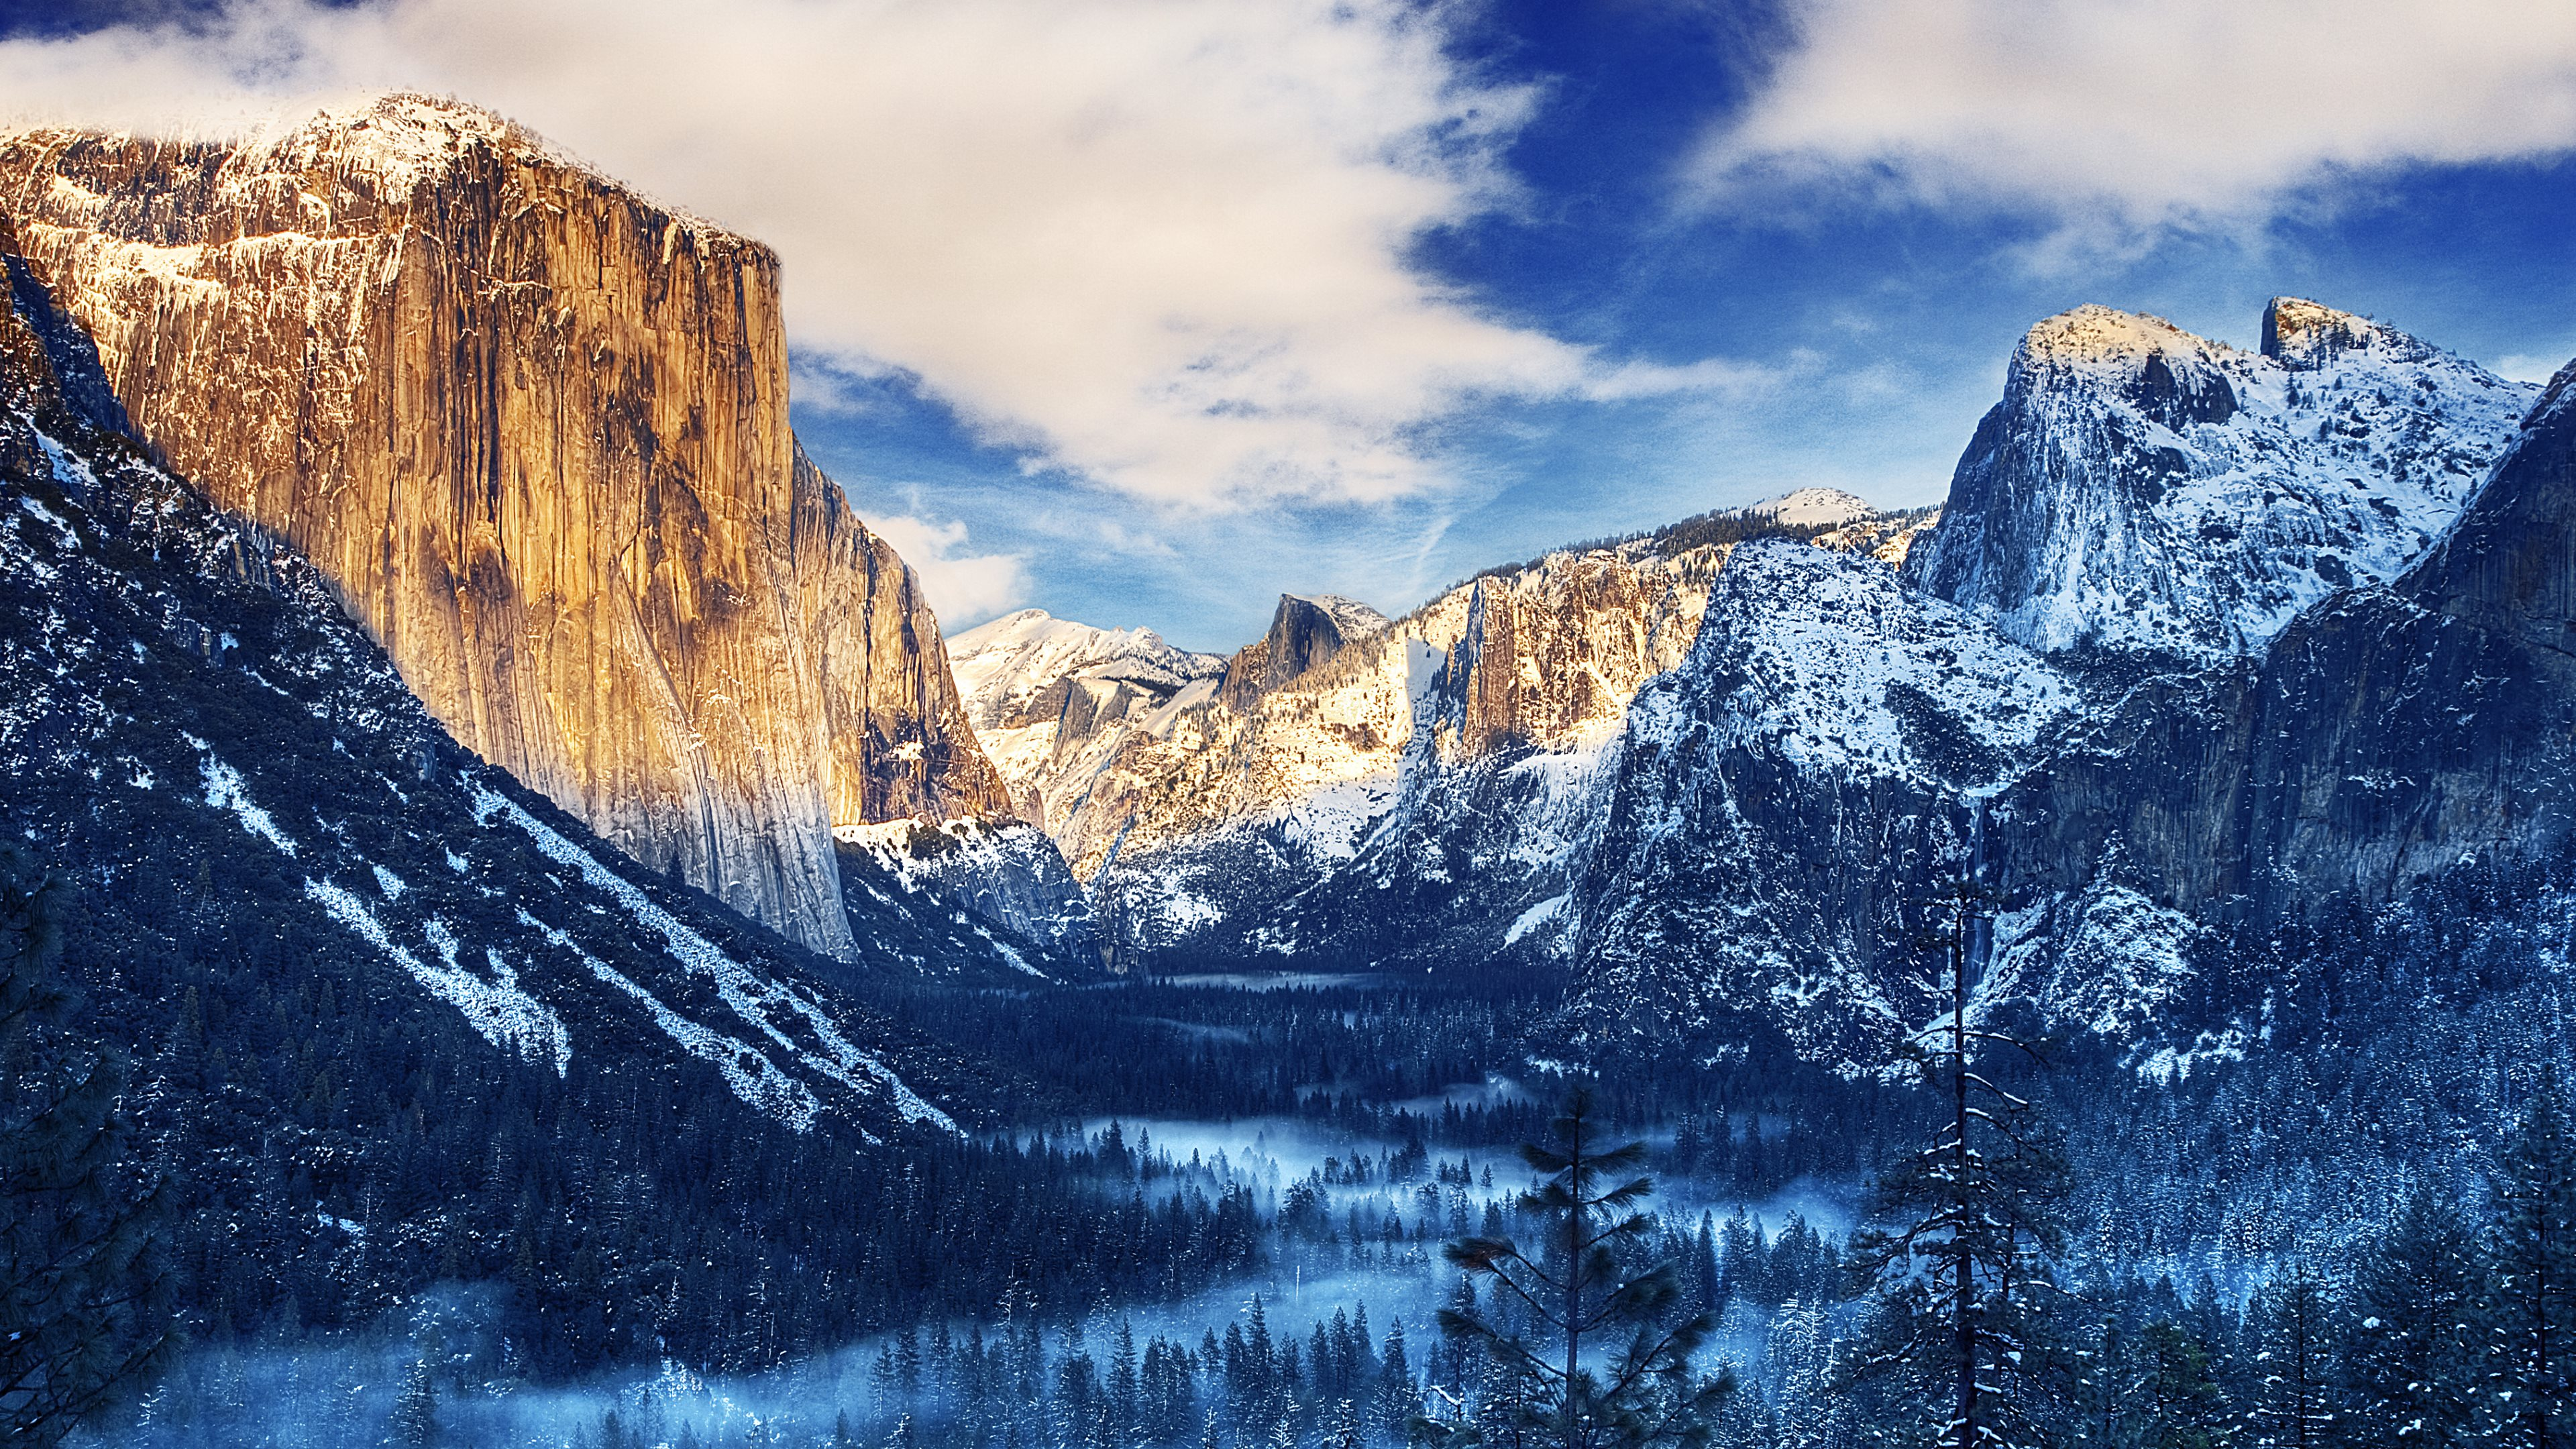 Yosemite Park Wallpaper - WallpaperSafari